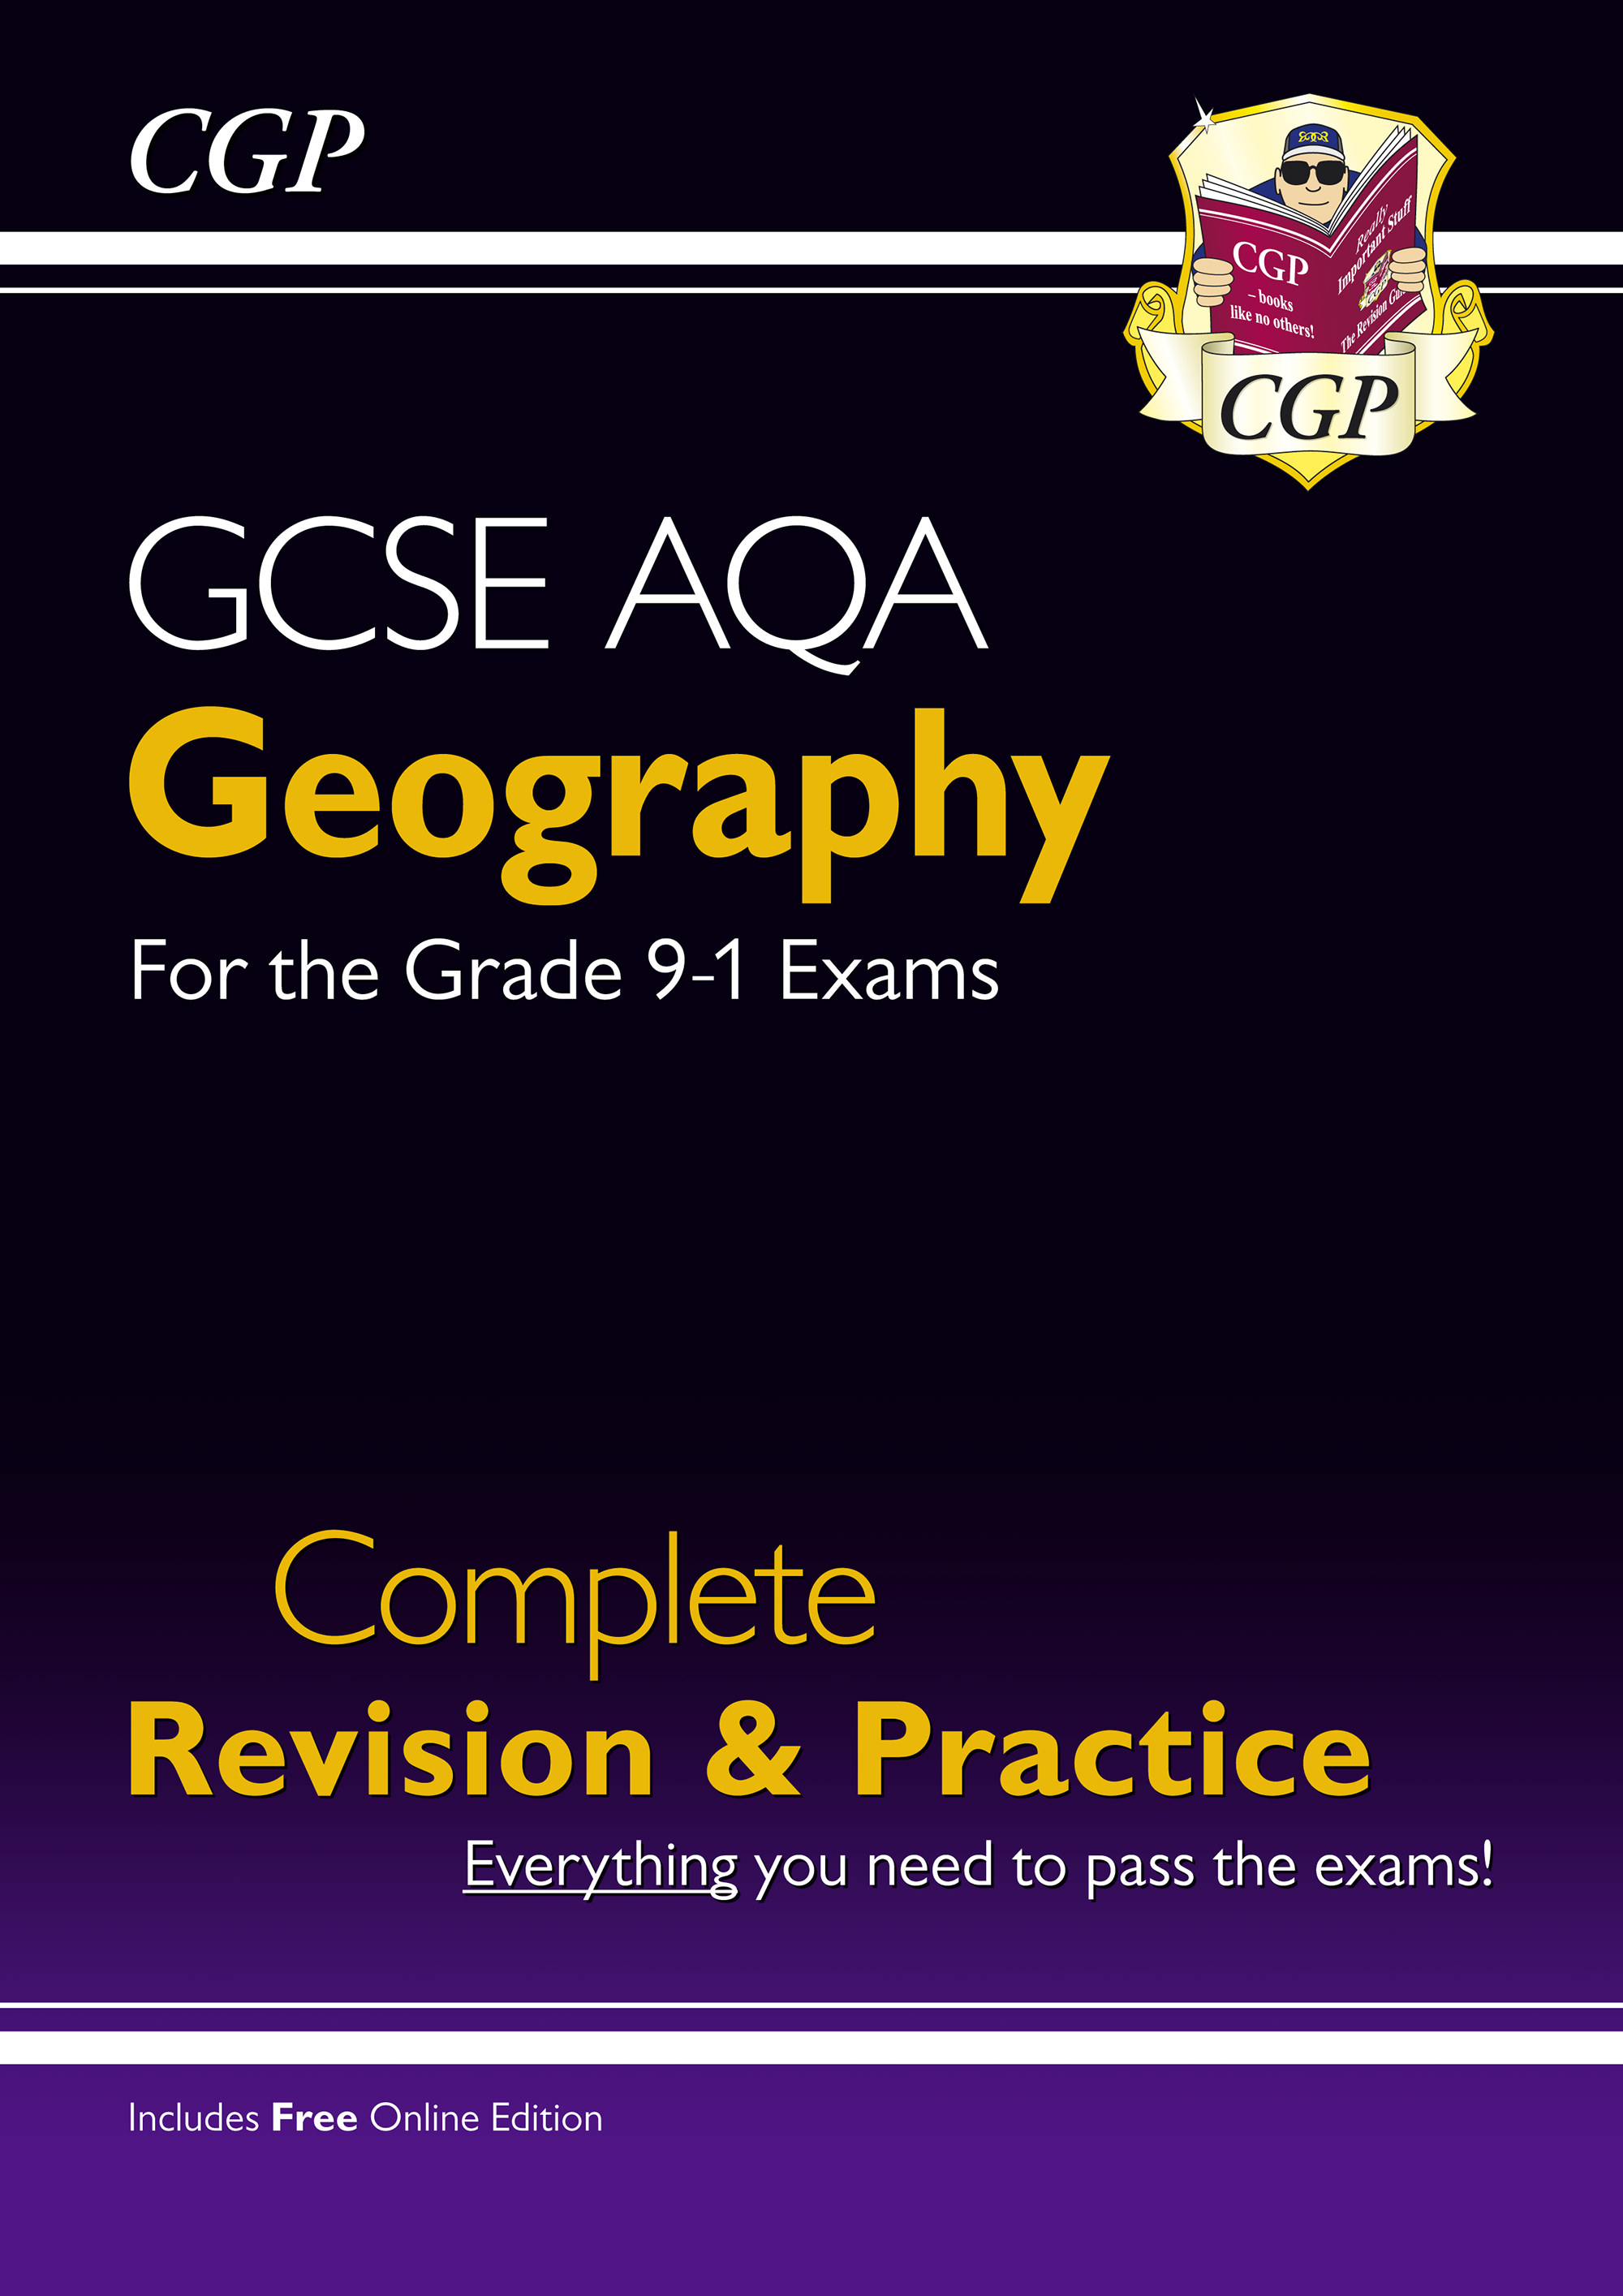 GAS41 - Grade 9-1 GCSE Geography AQA Complete Revision & Practice (with Online Edition)